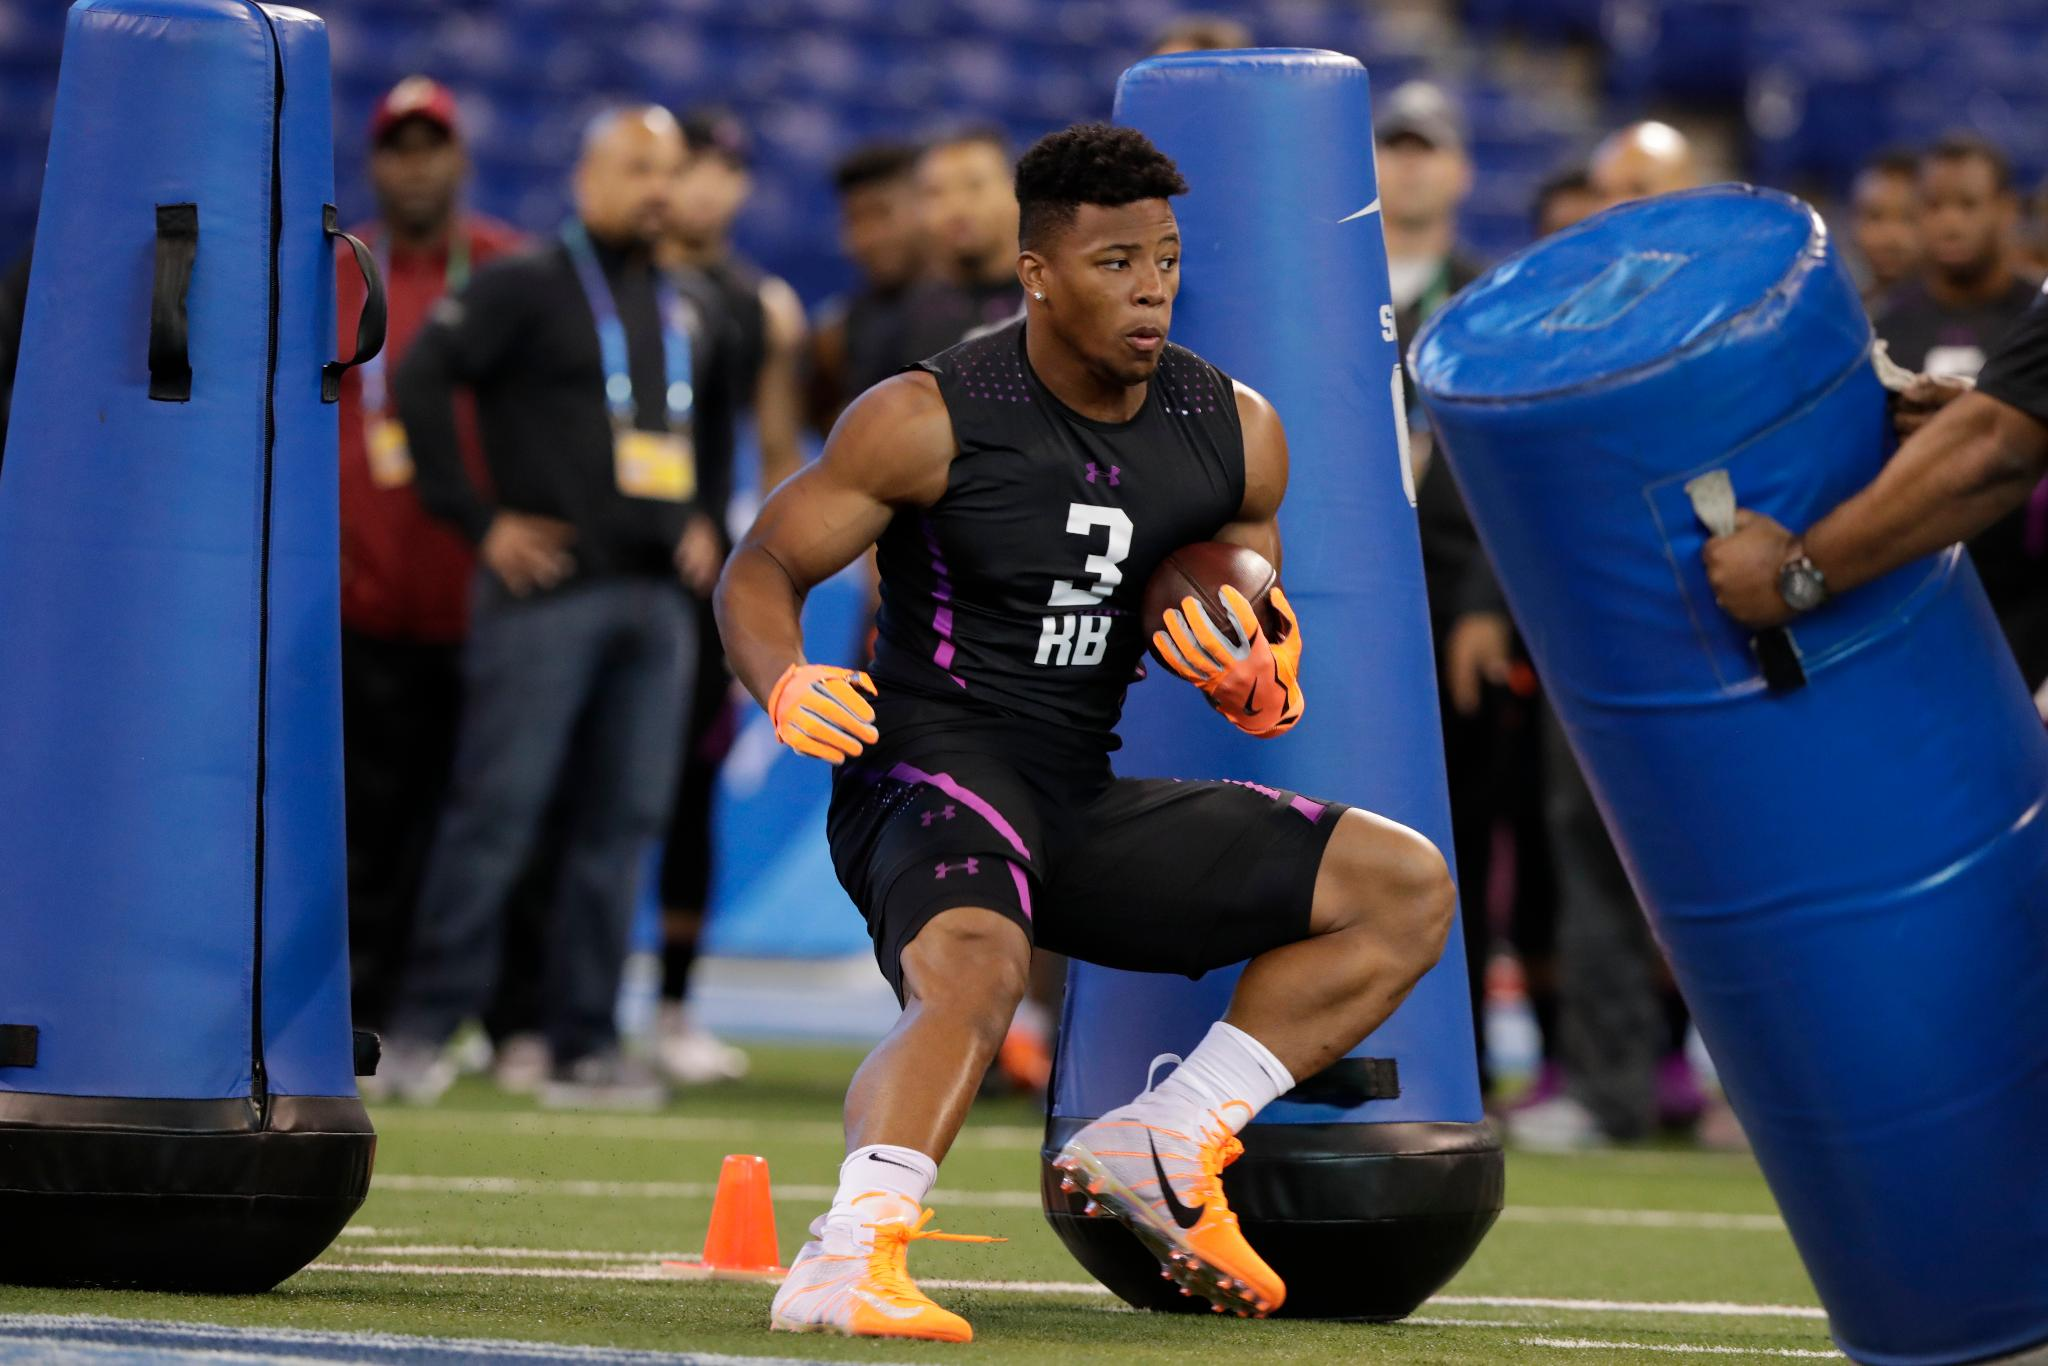 RB & OL workouts were held today at the #NFLCombine.  Top photos ��: https://t.co/jm0MOumI7d https://t.co/266uCqEyqn